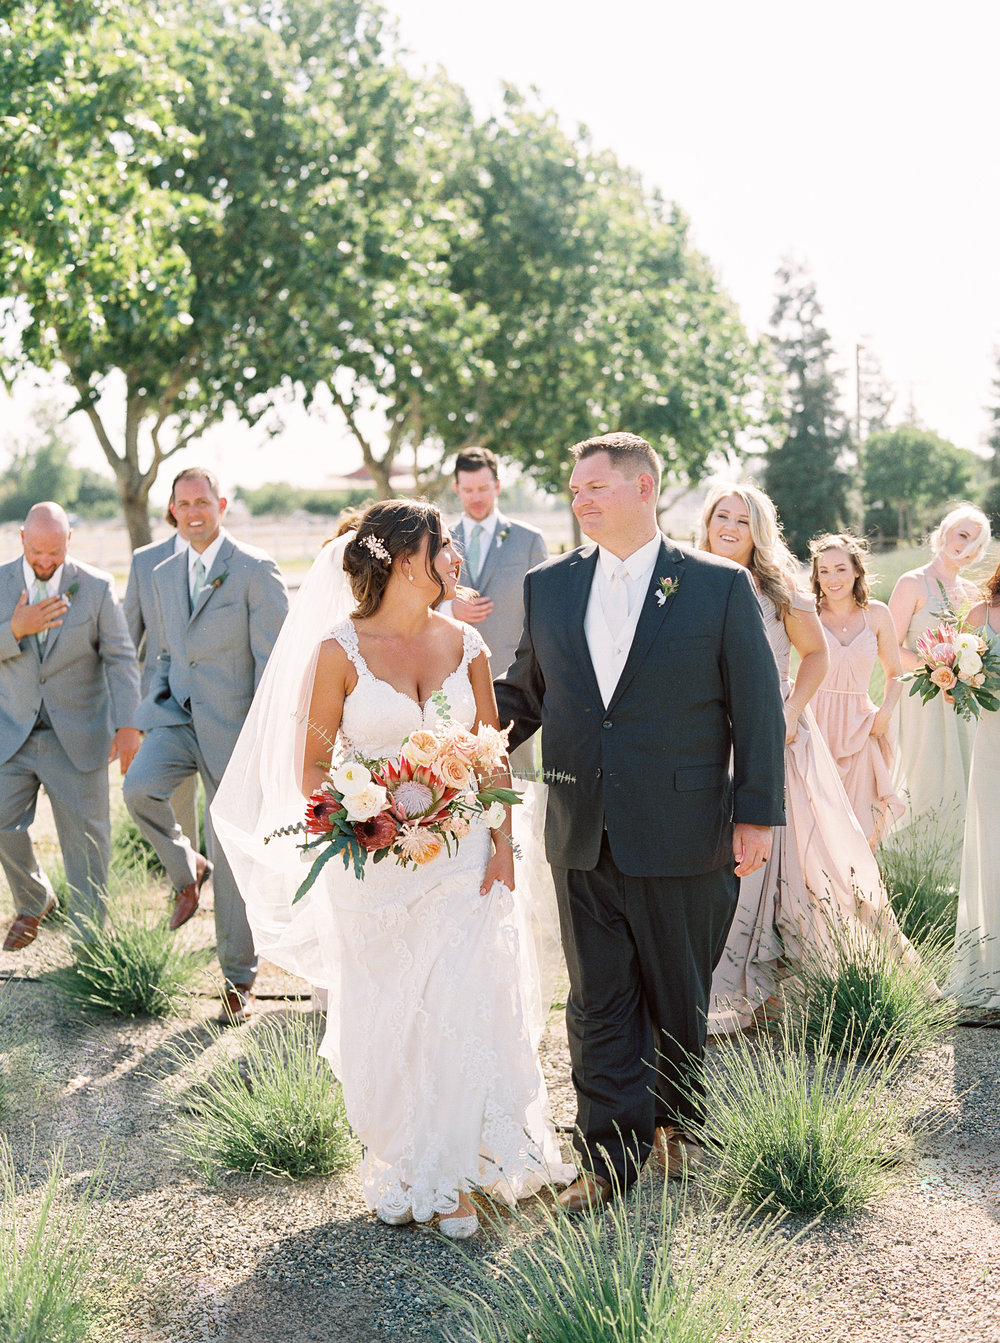 pageo-lavender-farm-wedding-turlock-california-24.jpg